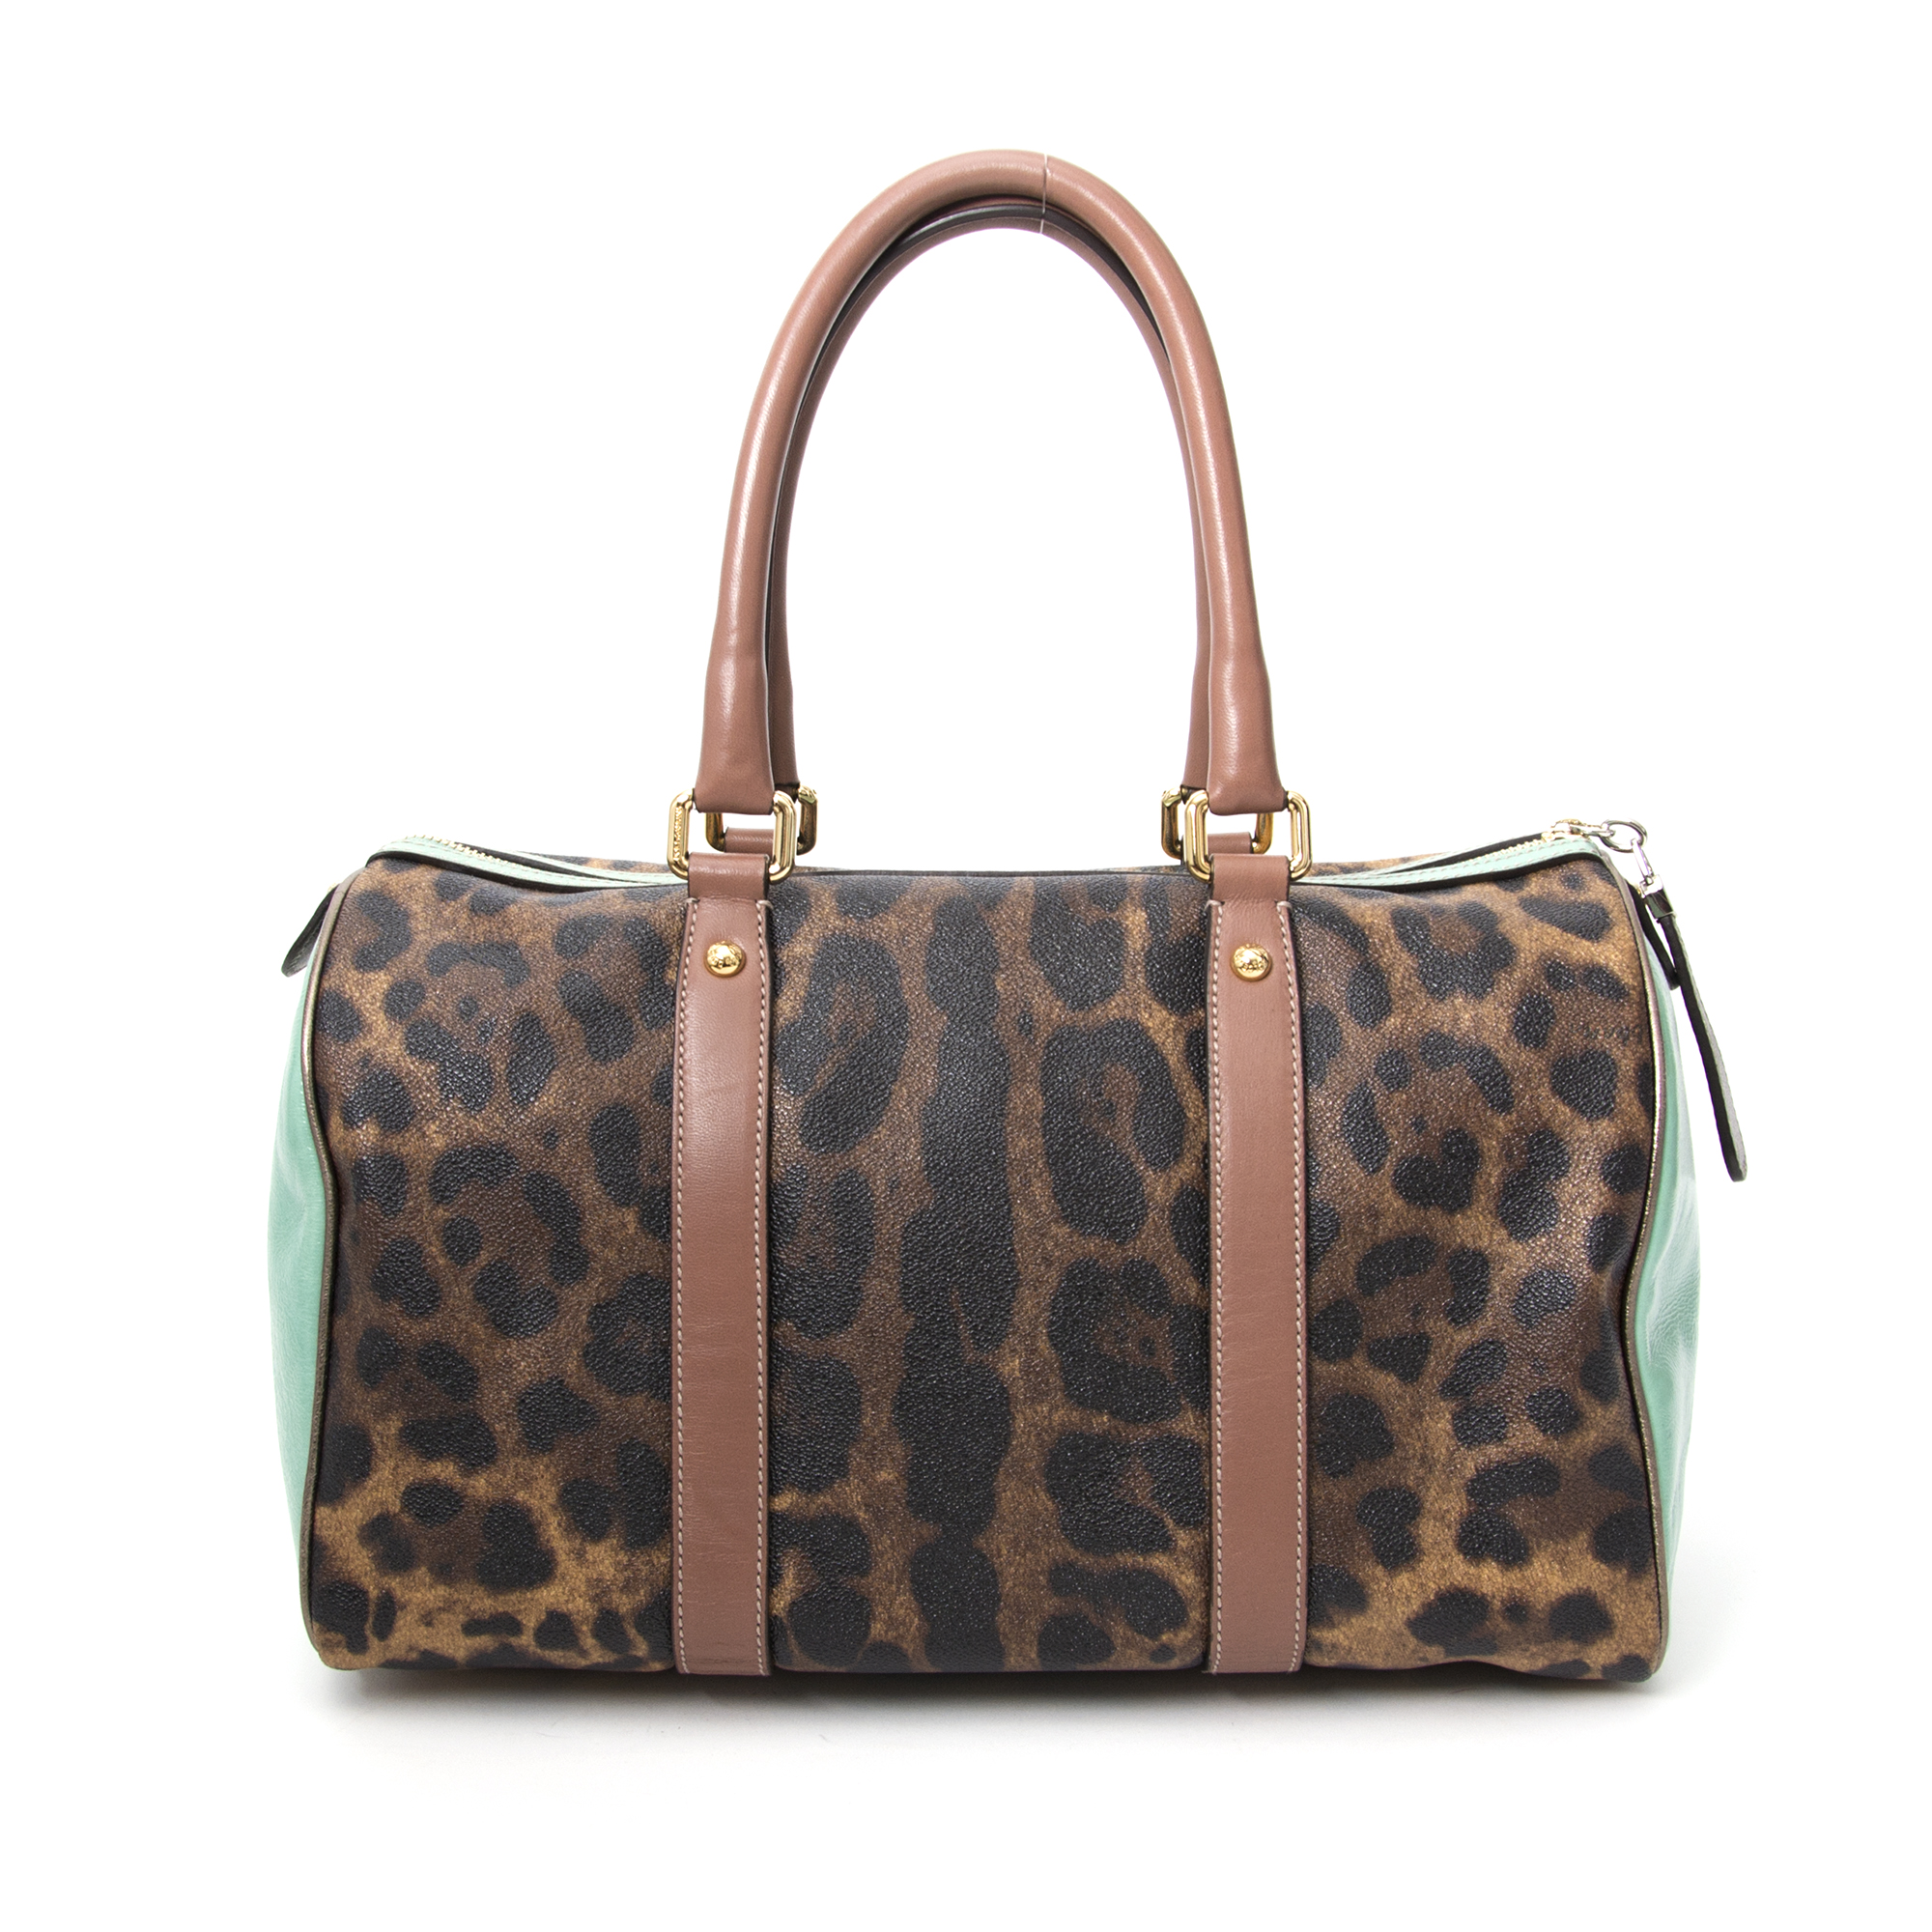 Vintage Dolce & Gabbana leopard bag for the best price at Labellov webshop. Safe and secure online shopping with 100% authenticity. Vintage Dolce & Gabbana leopard bag pour le meilleur prix.